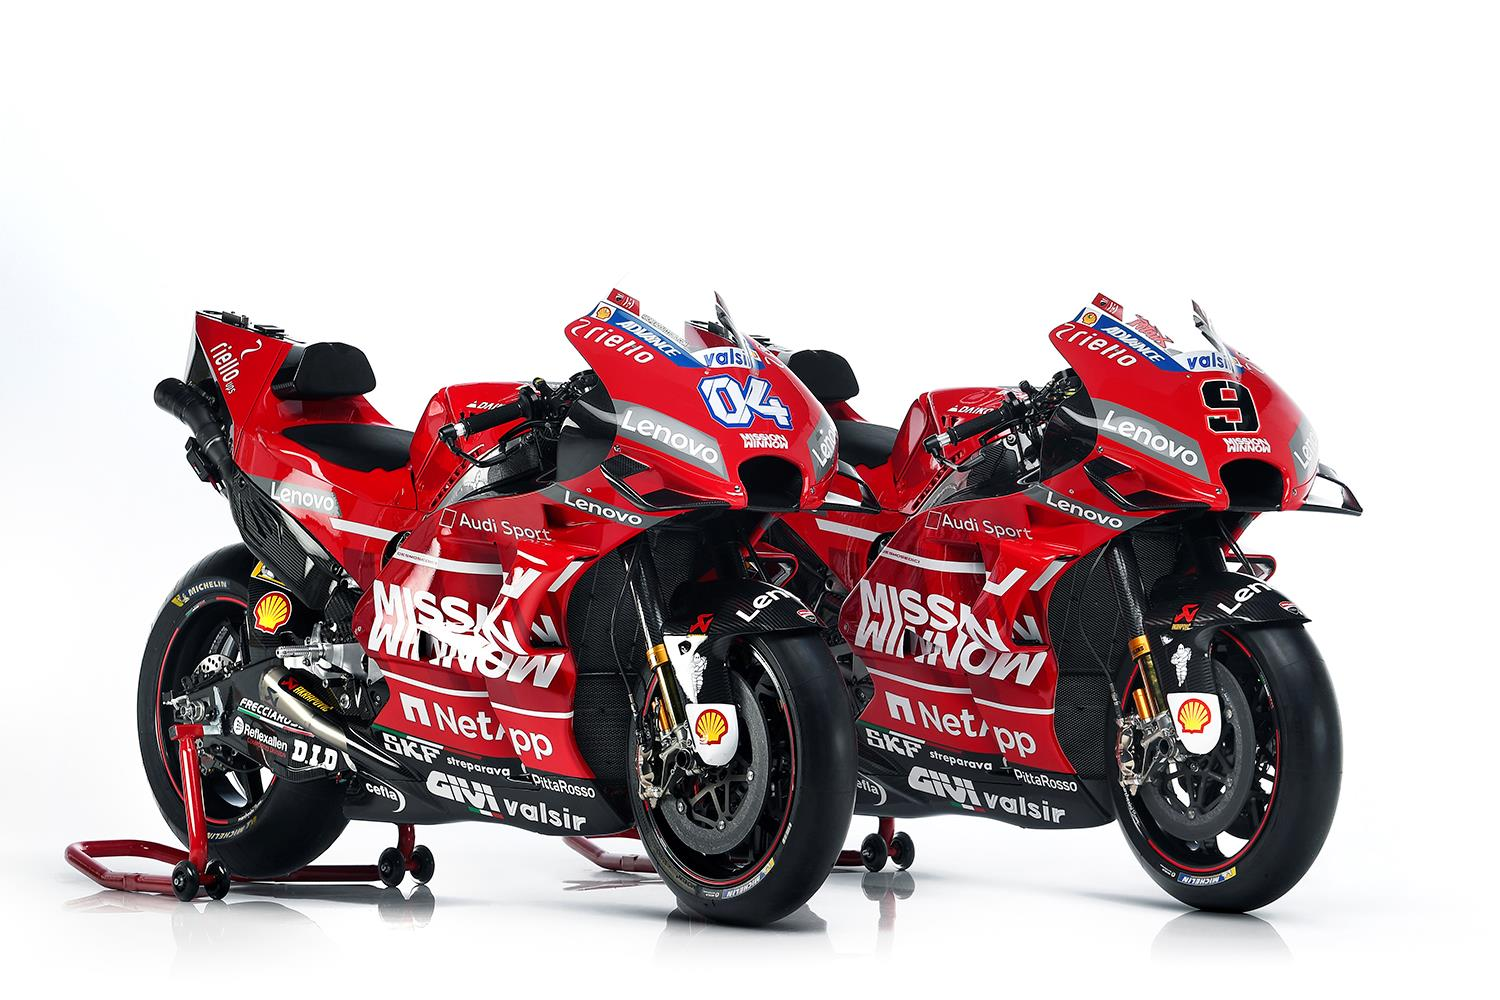 Poll: What do you think of the 2019 Ducati MotoGP livery?